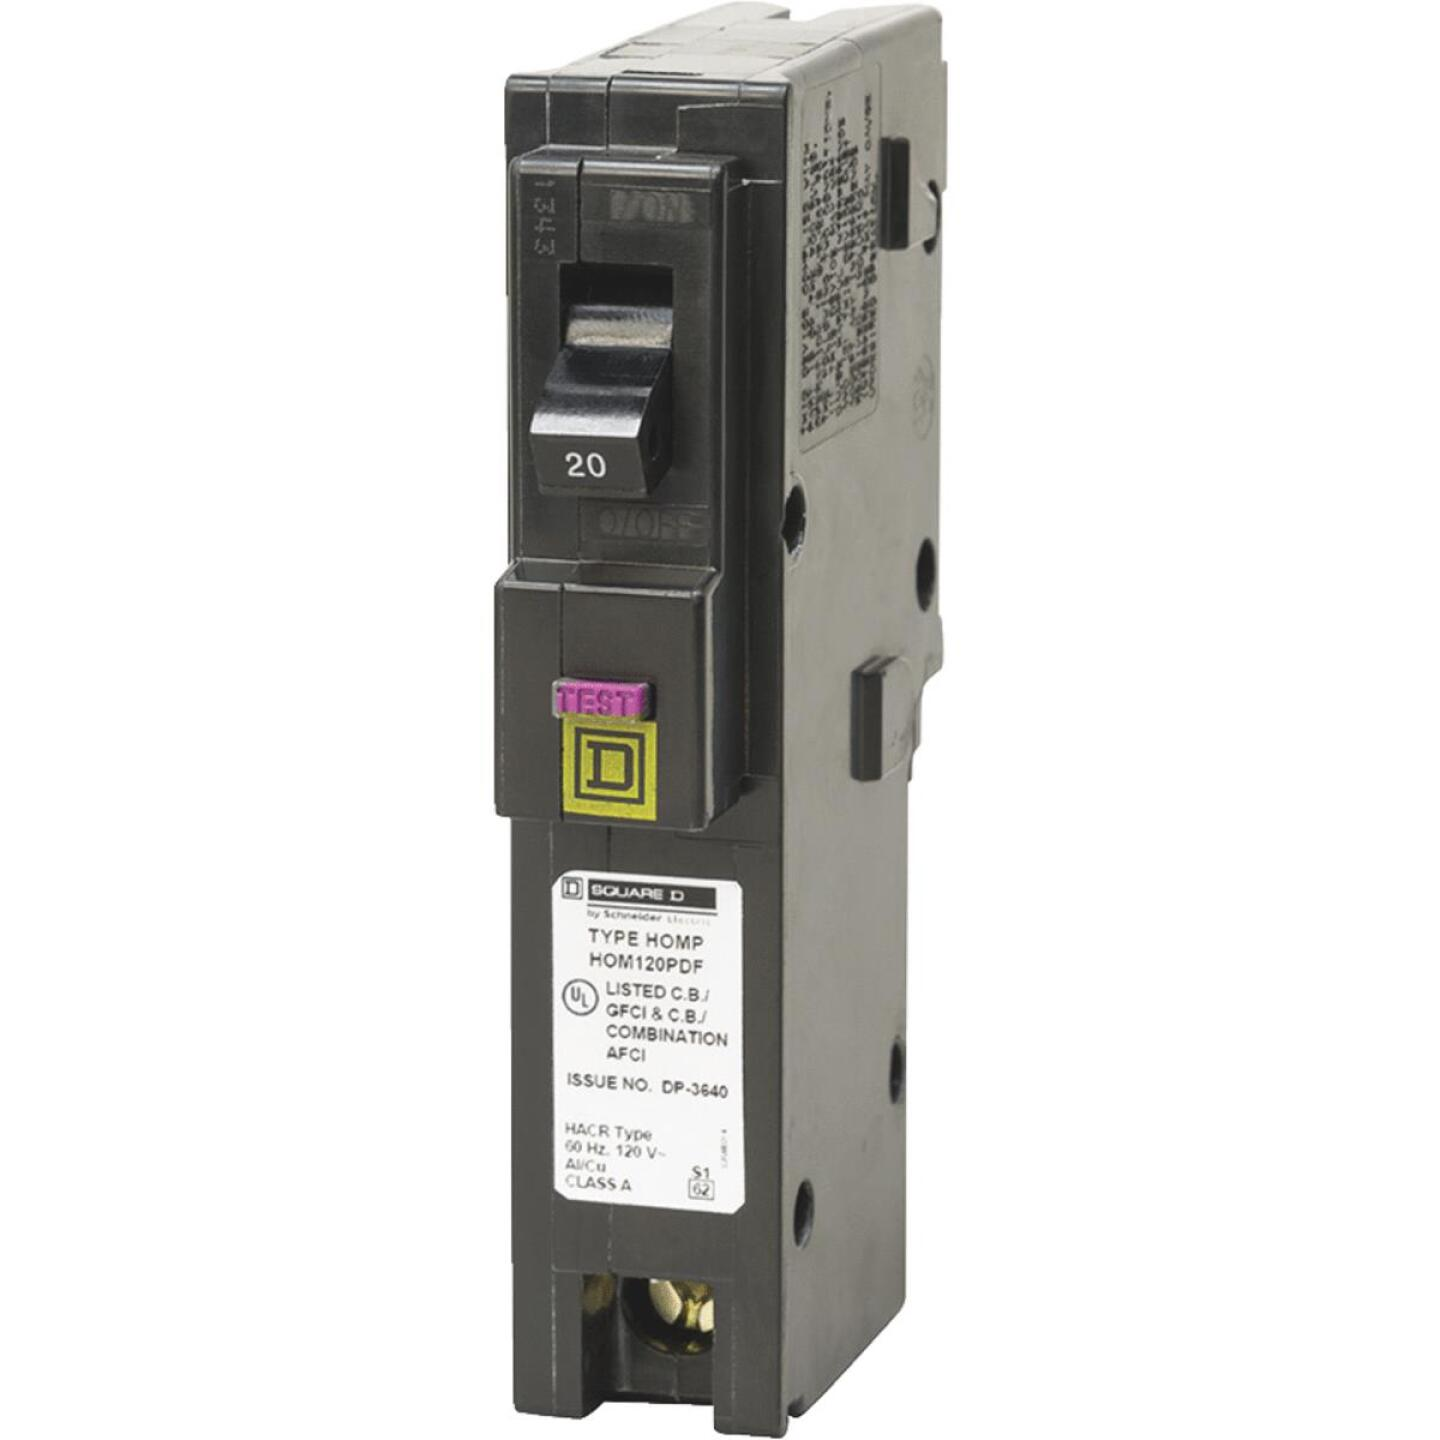 Square D Homeline 20A Single-Pole CAFCI Plug-On Neutral Dual Function Circuit Breaker Image 1